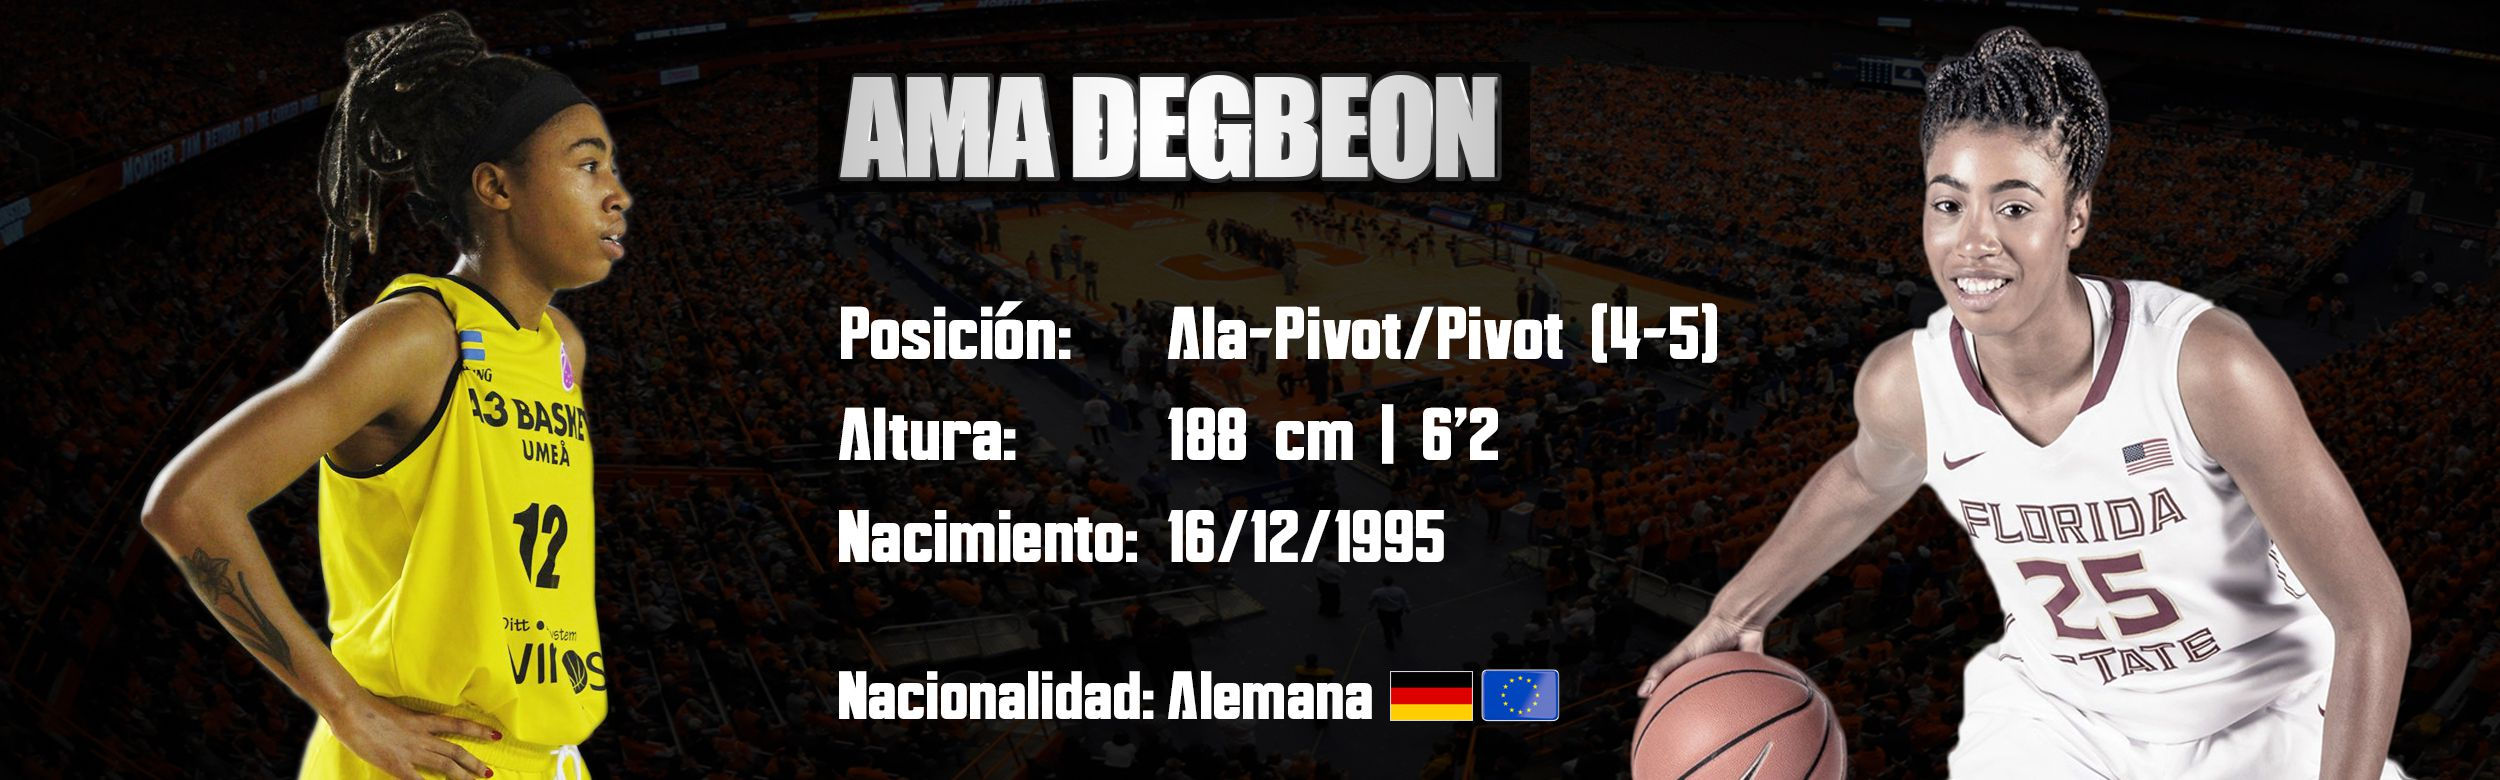 Ama Degbeon